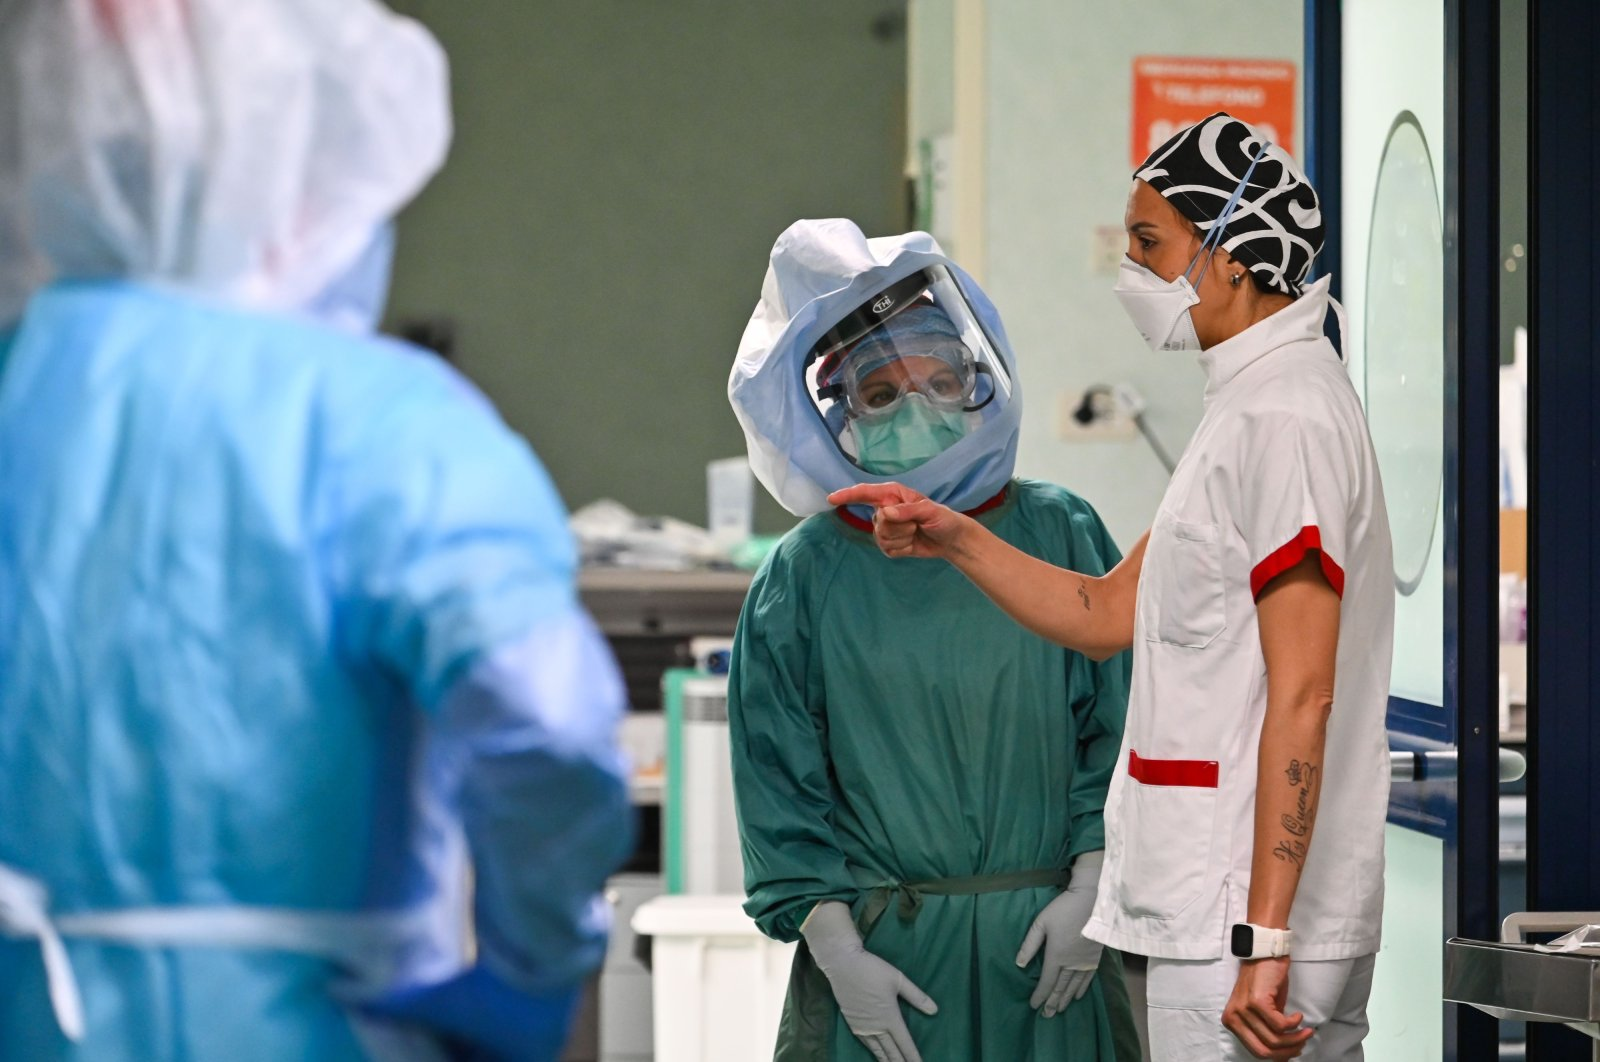 Members of the medical staff wearing Personal Protective Equipment (PPE) talk at the Intensive care unit for patients infected by the novel coronavirus disease COVID-19 at the Policlinico di Tor Vergata hospital, Rome, Wednesday, April 8, 2020. (AFP Photo)